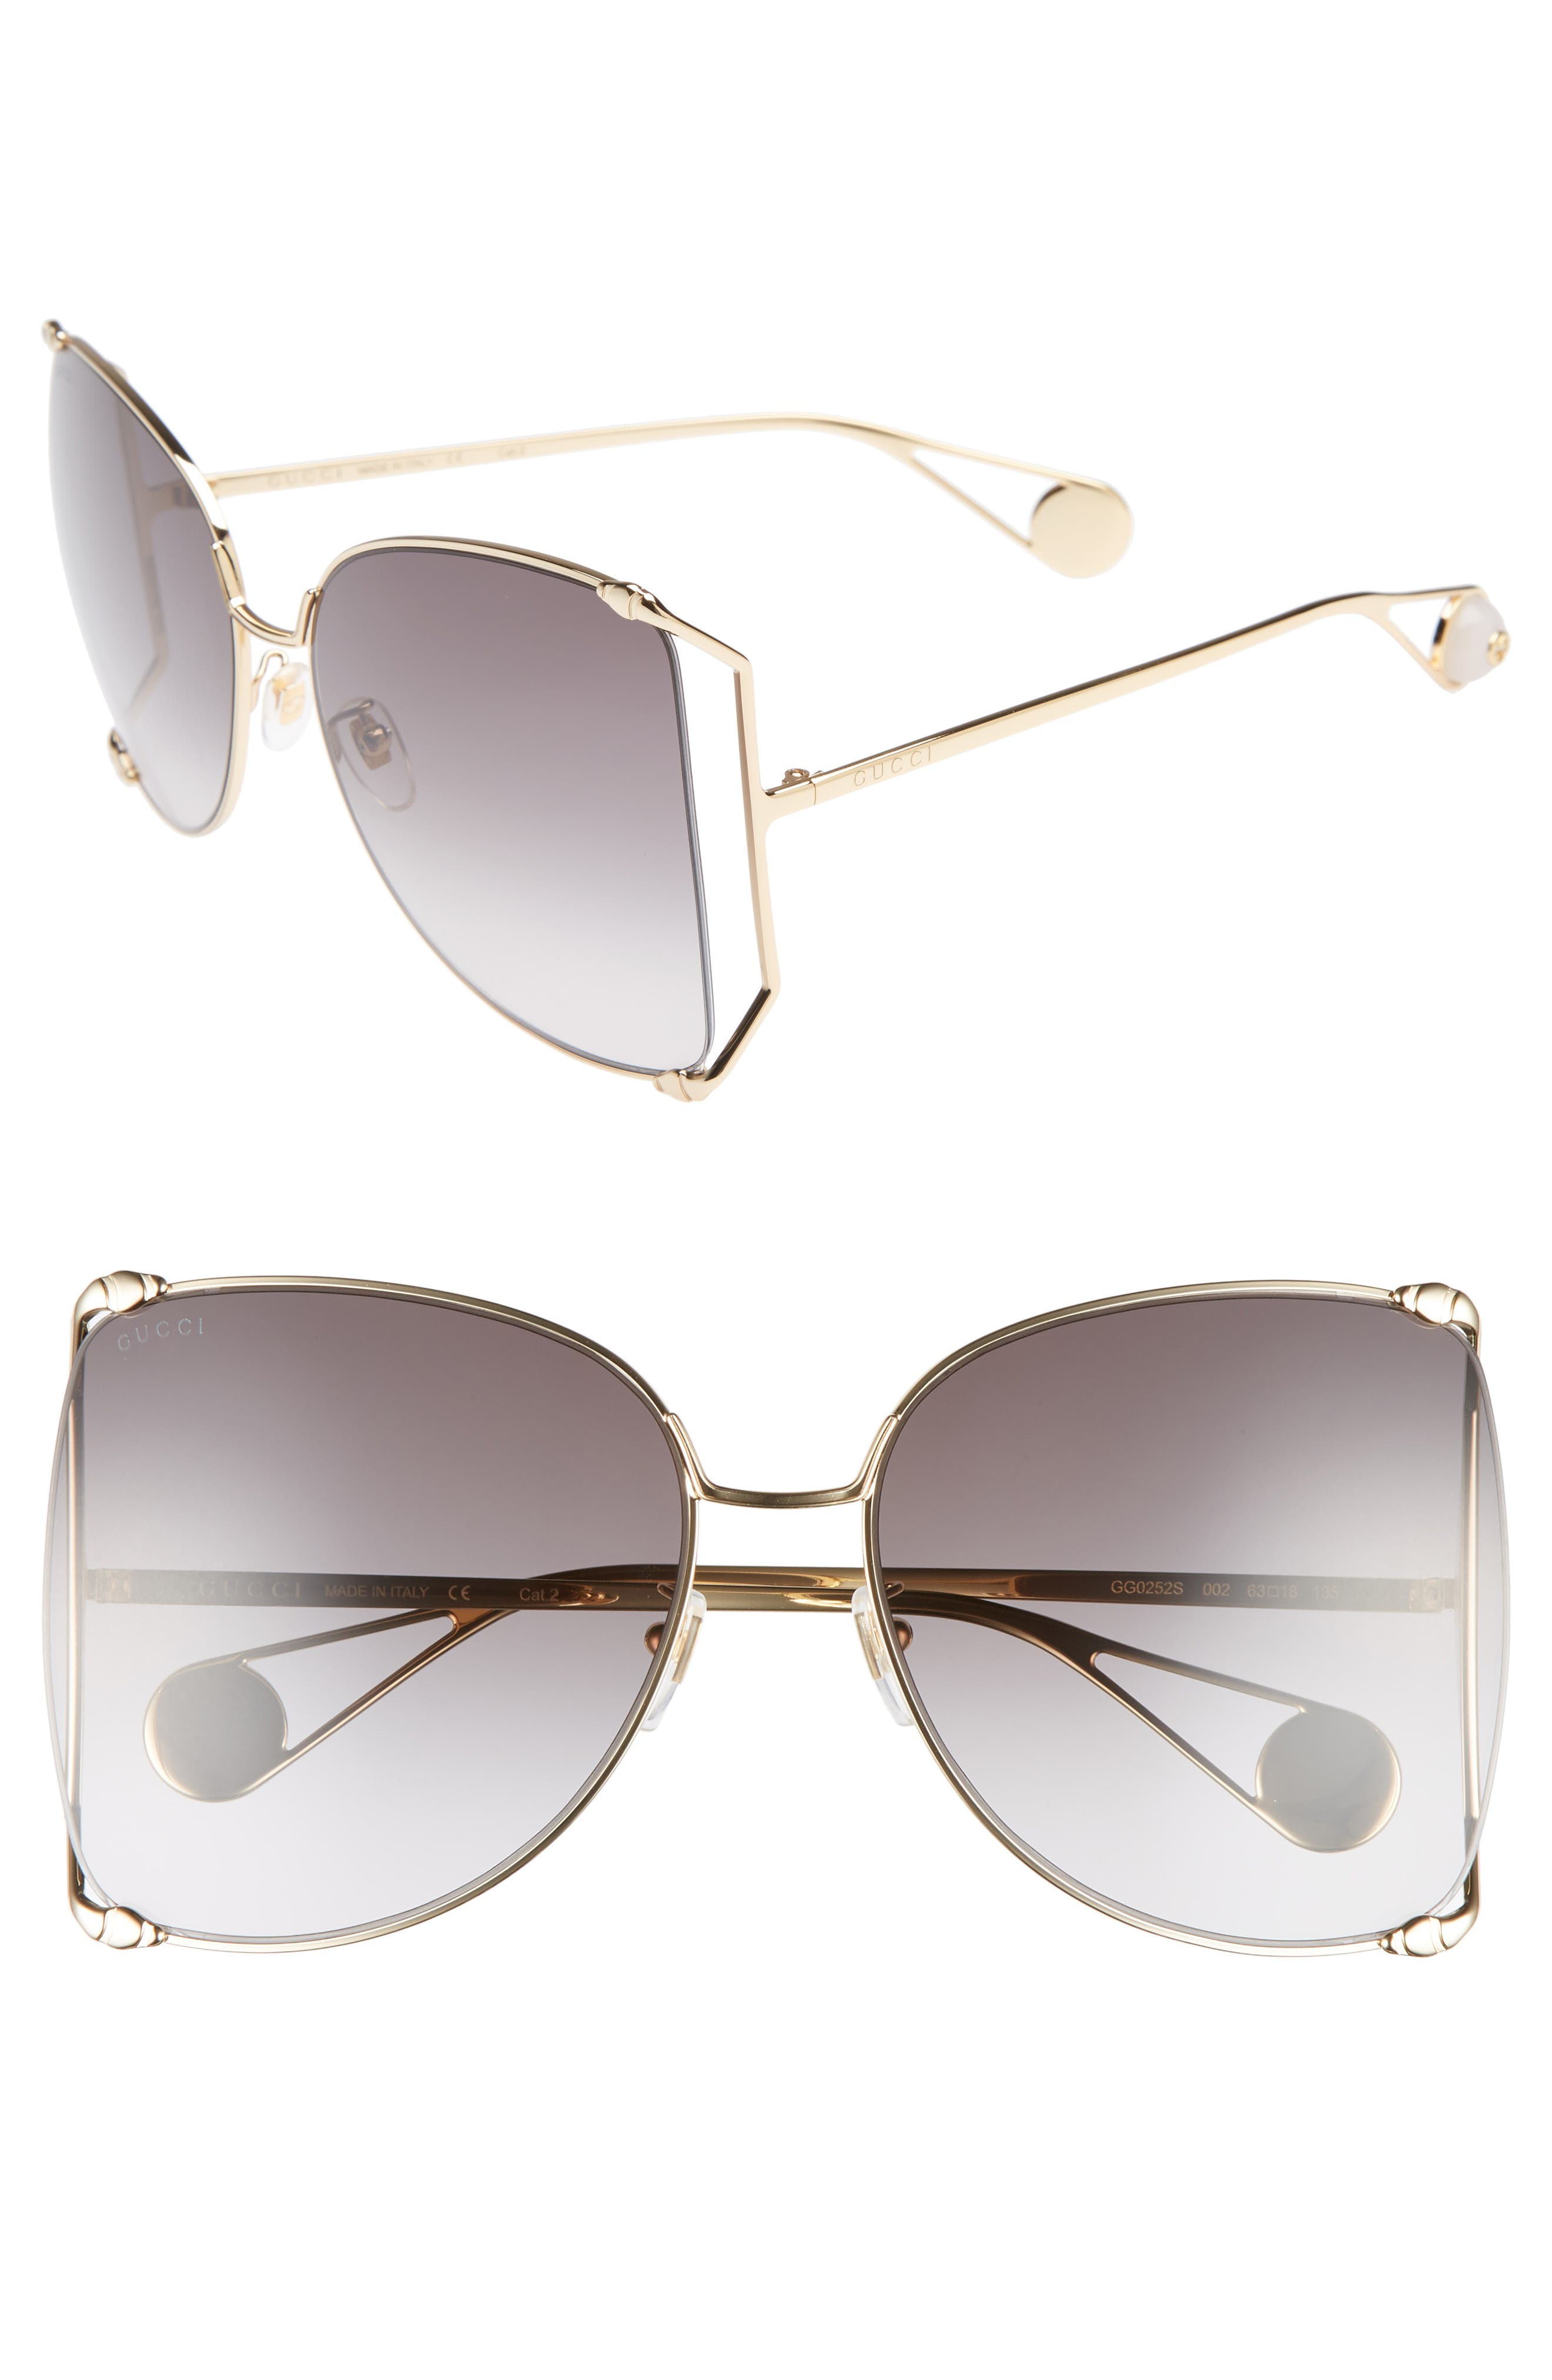 63mm Gradient Oversize Butterfly Sunglasses, Main, color, 711